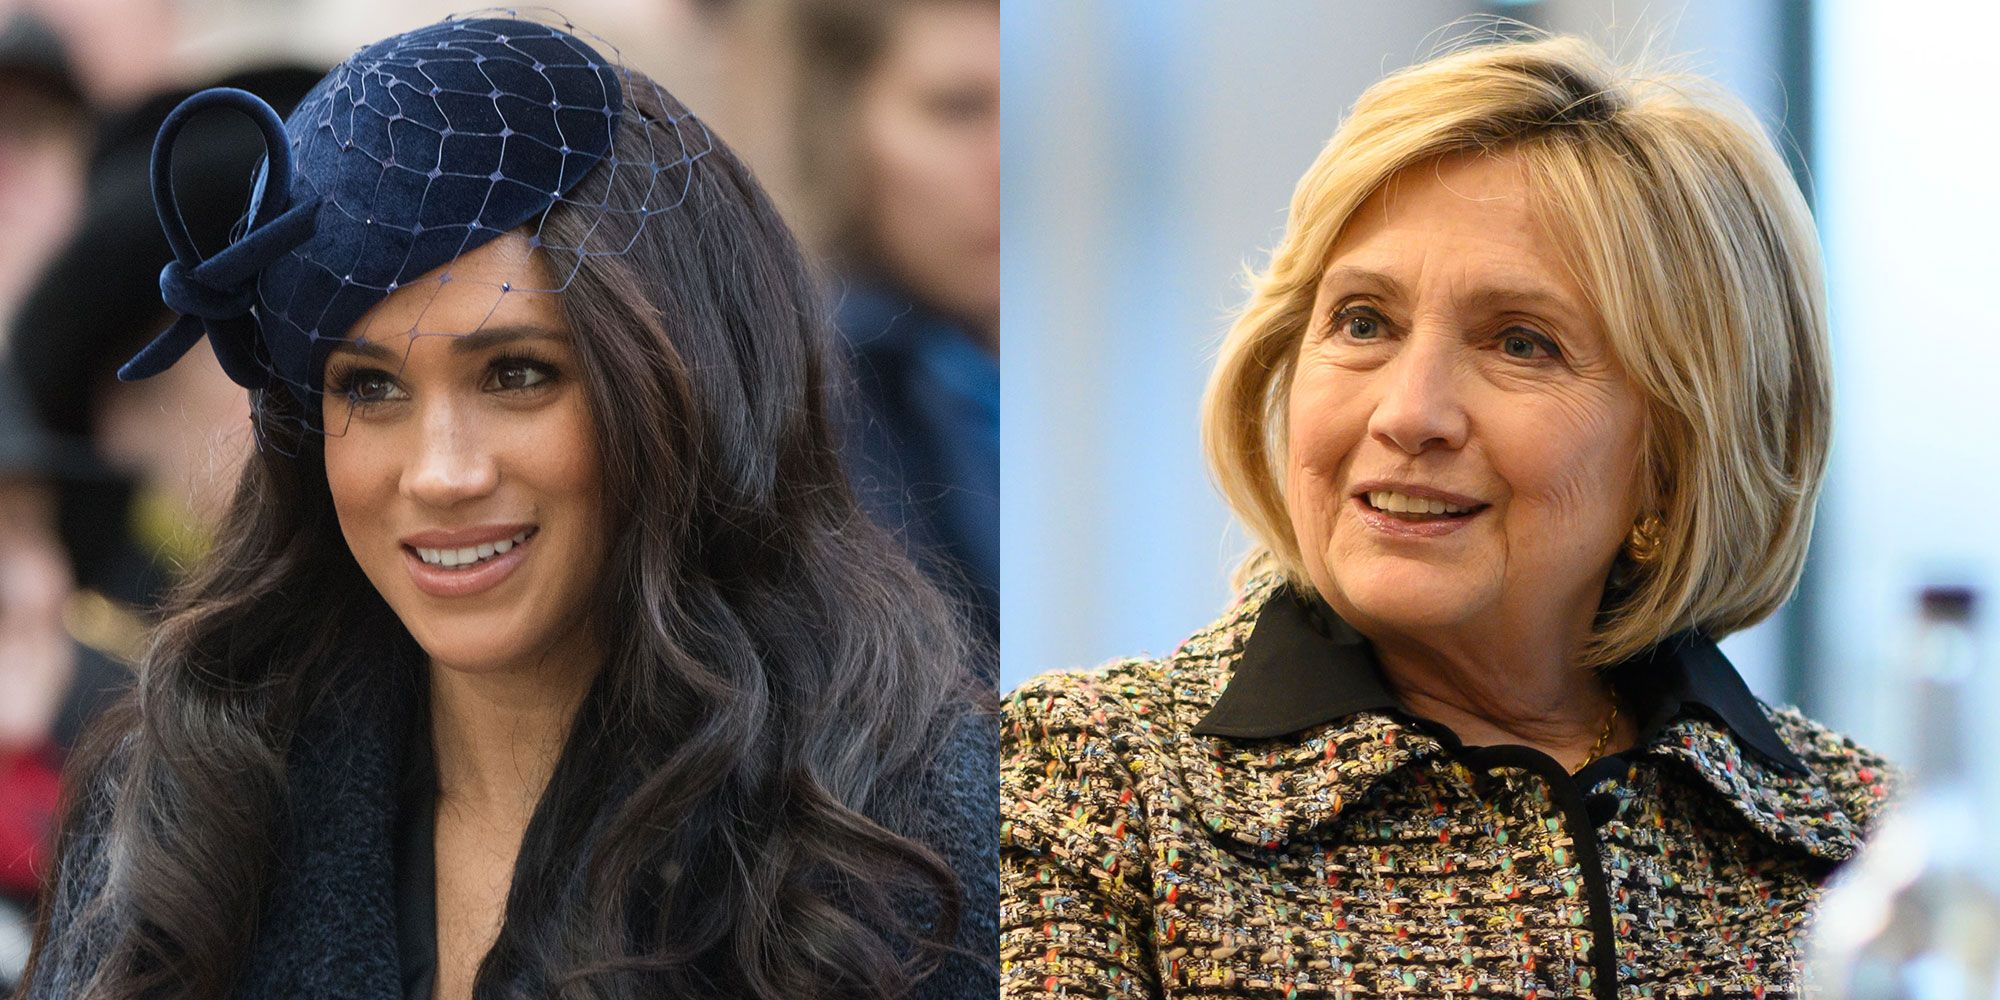 Meghan Markle Secretly Hosted Hillary Clinton at Frogmore Cottage